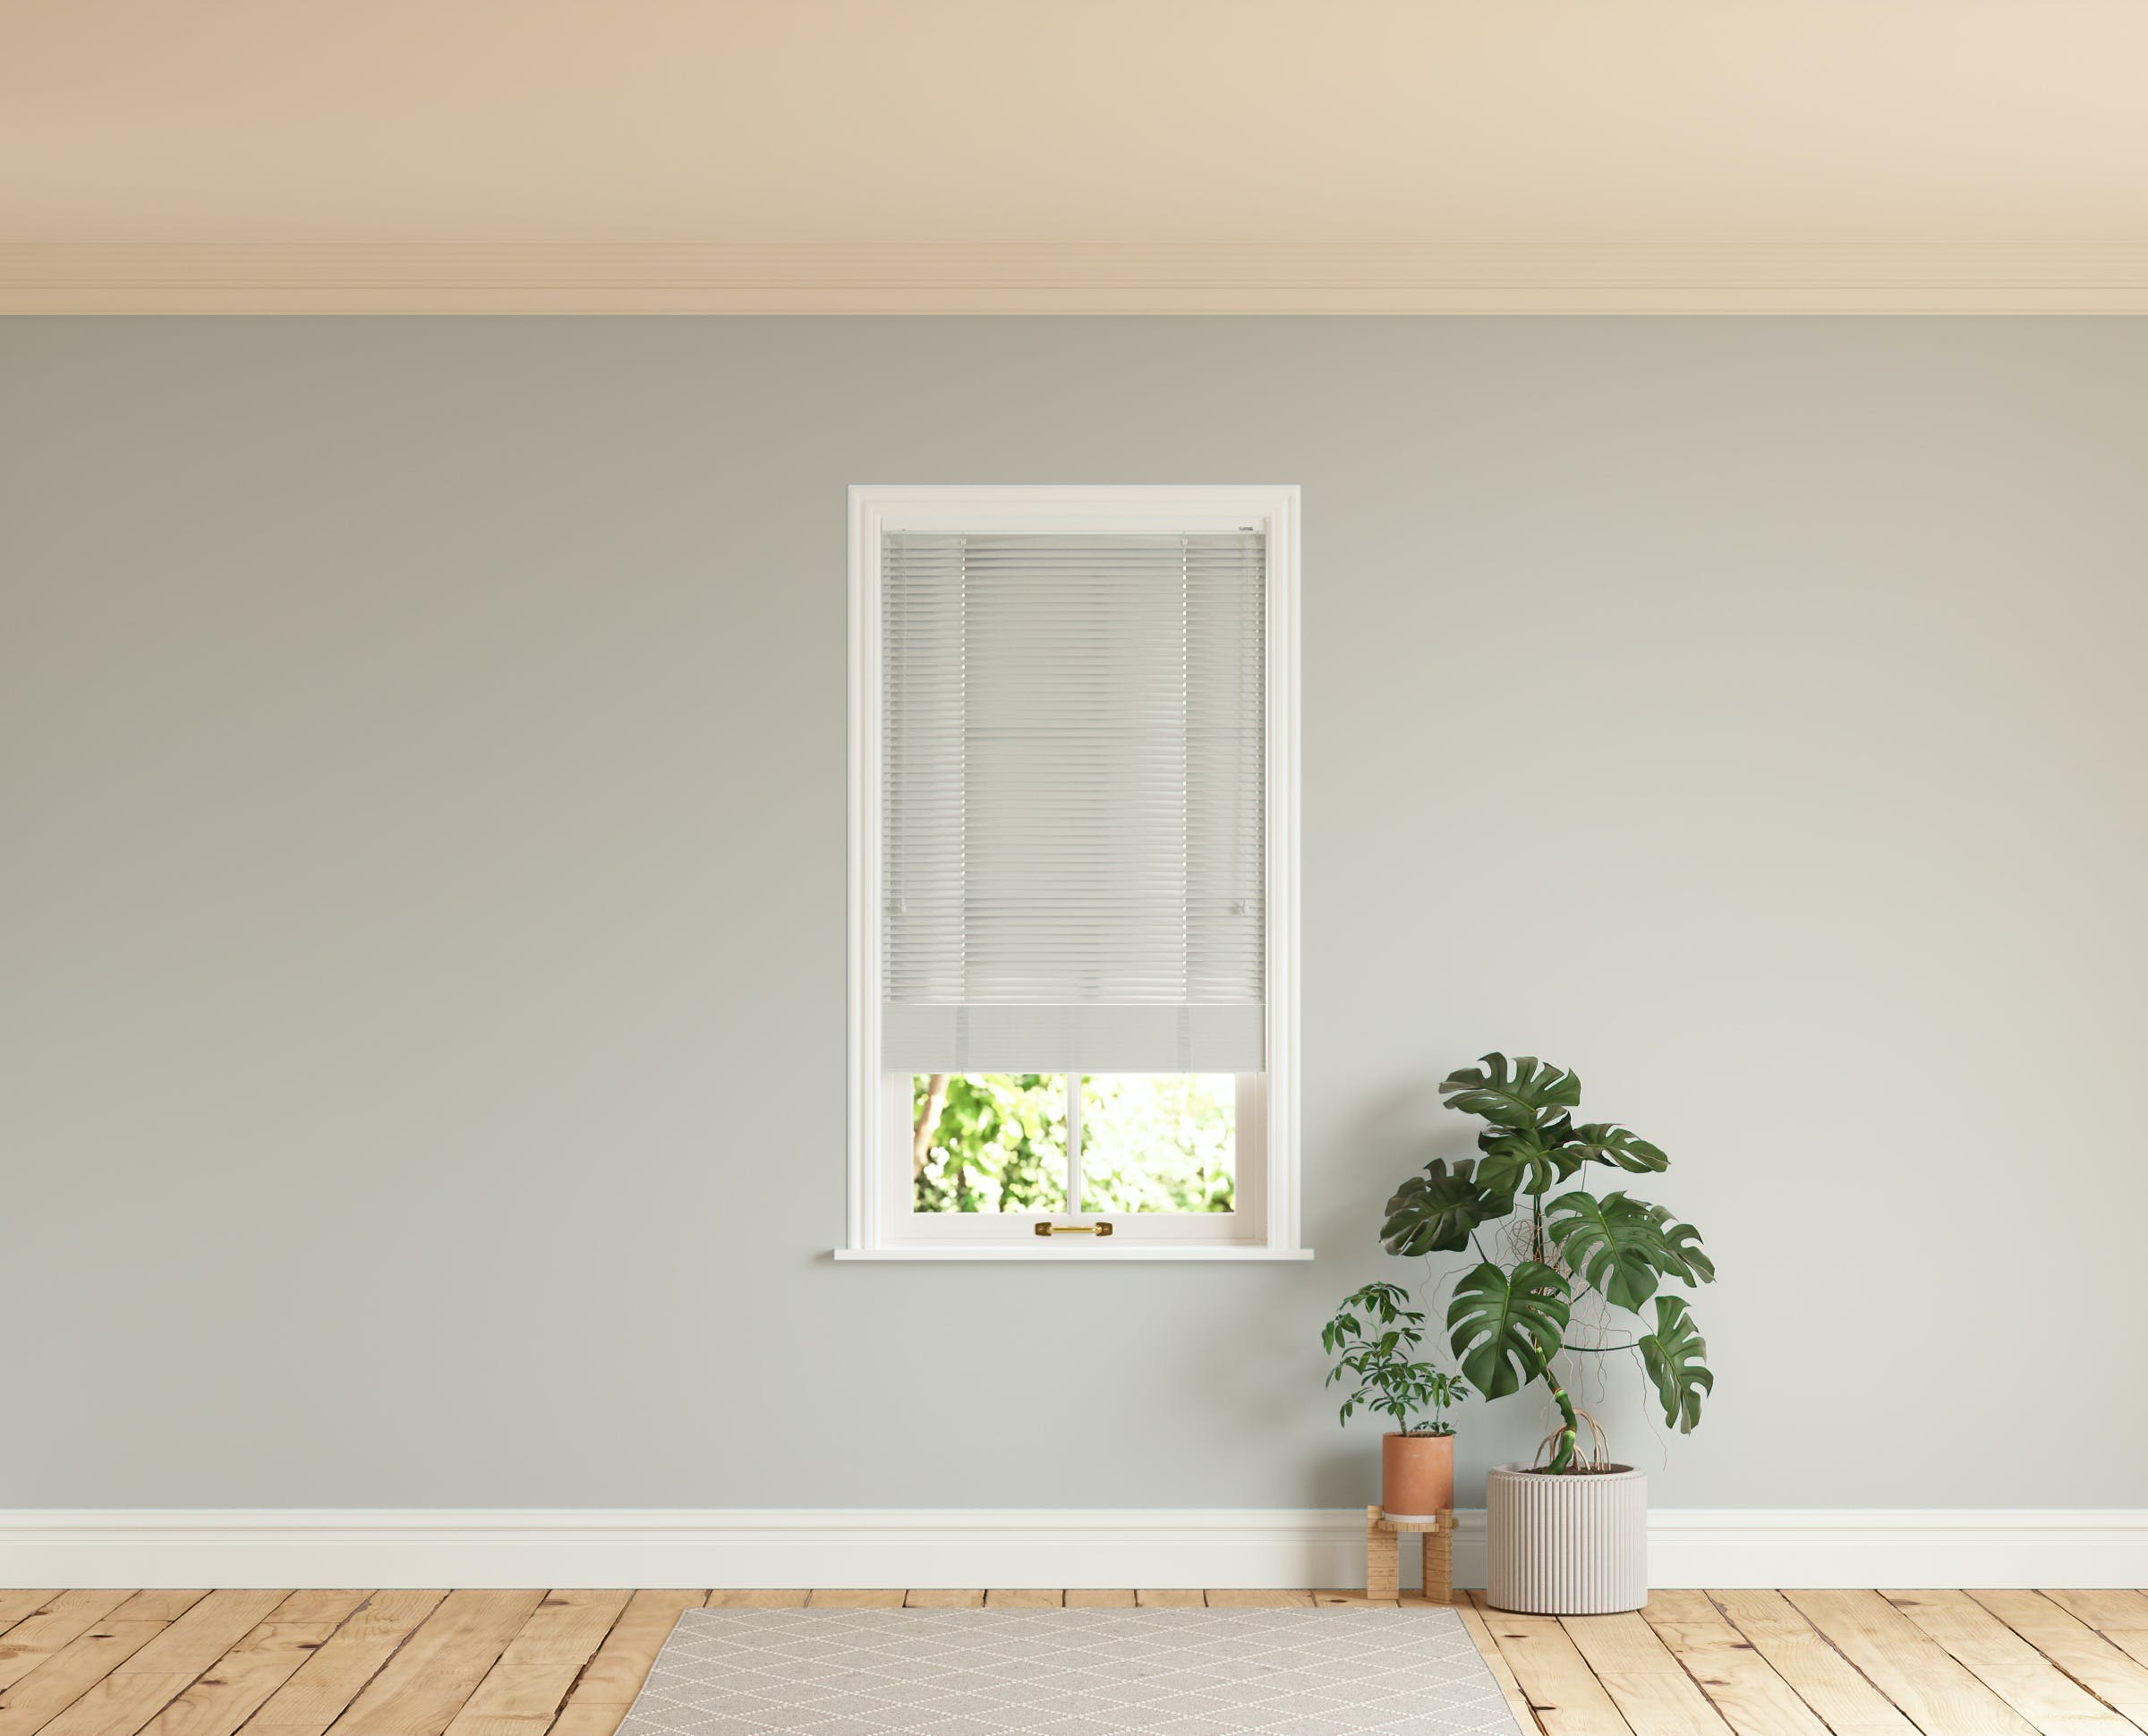 Room with walls painted in Lick Grey 03 and Grey 03 Venetian blinds